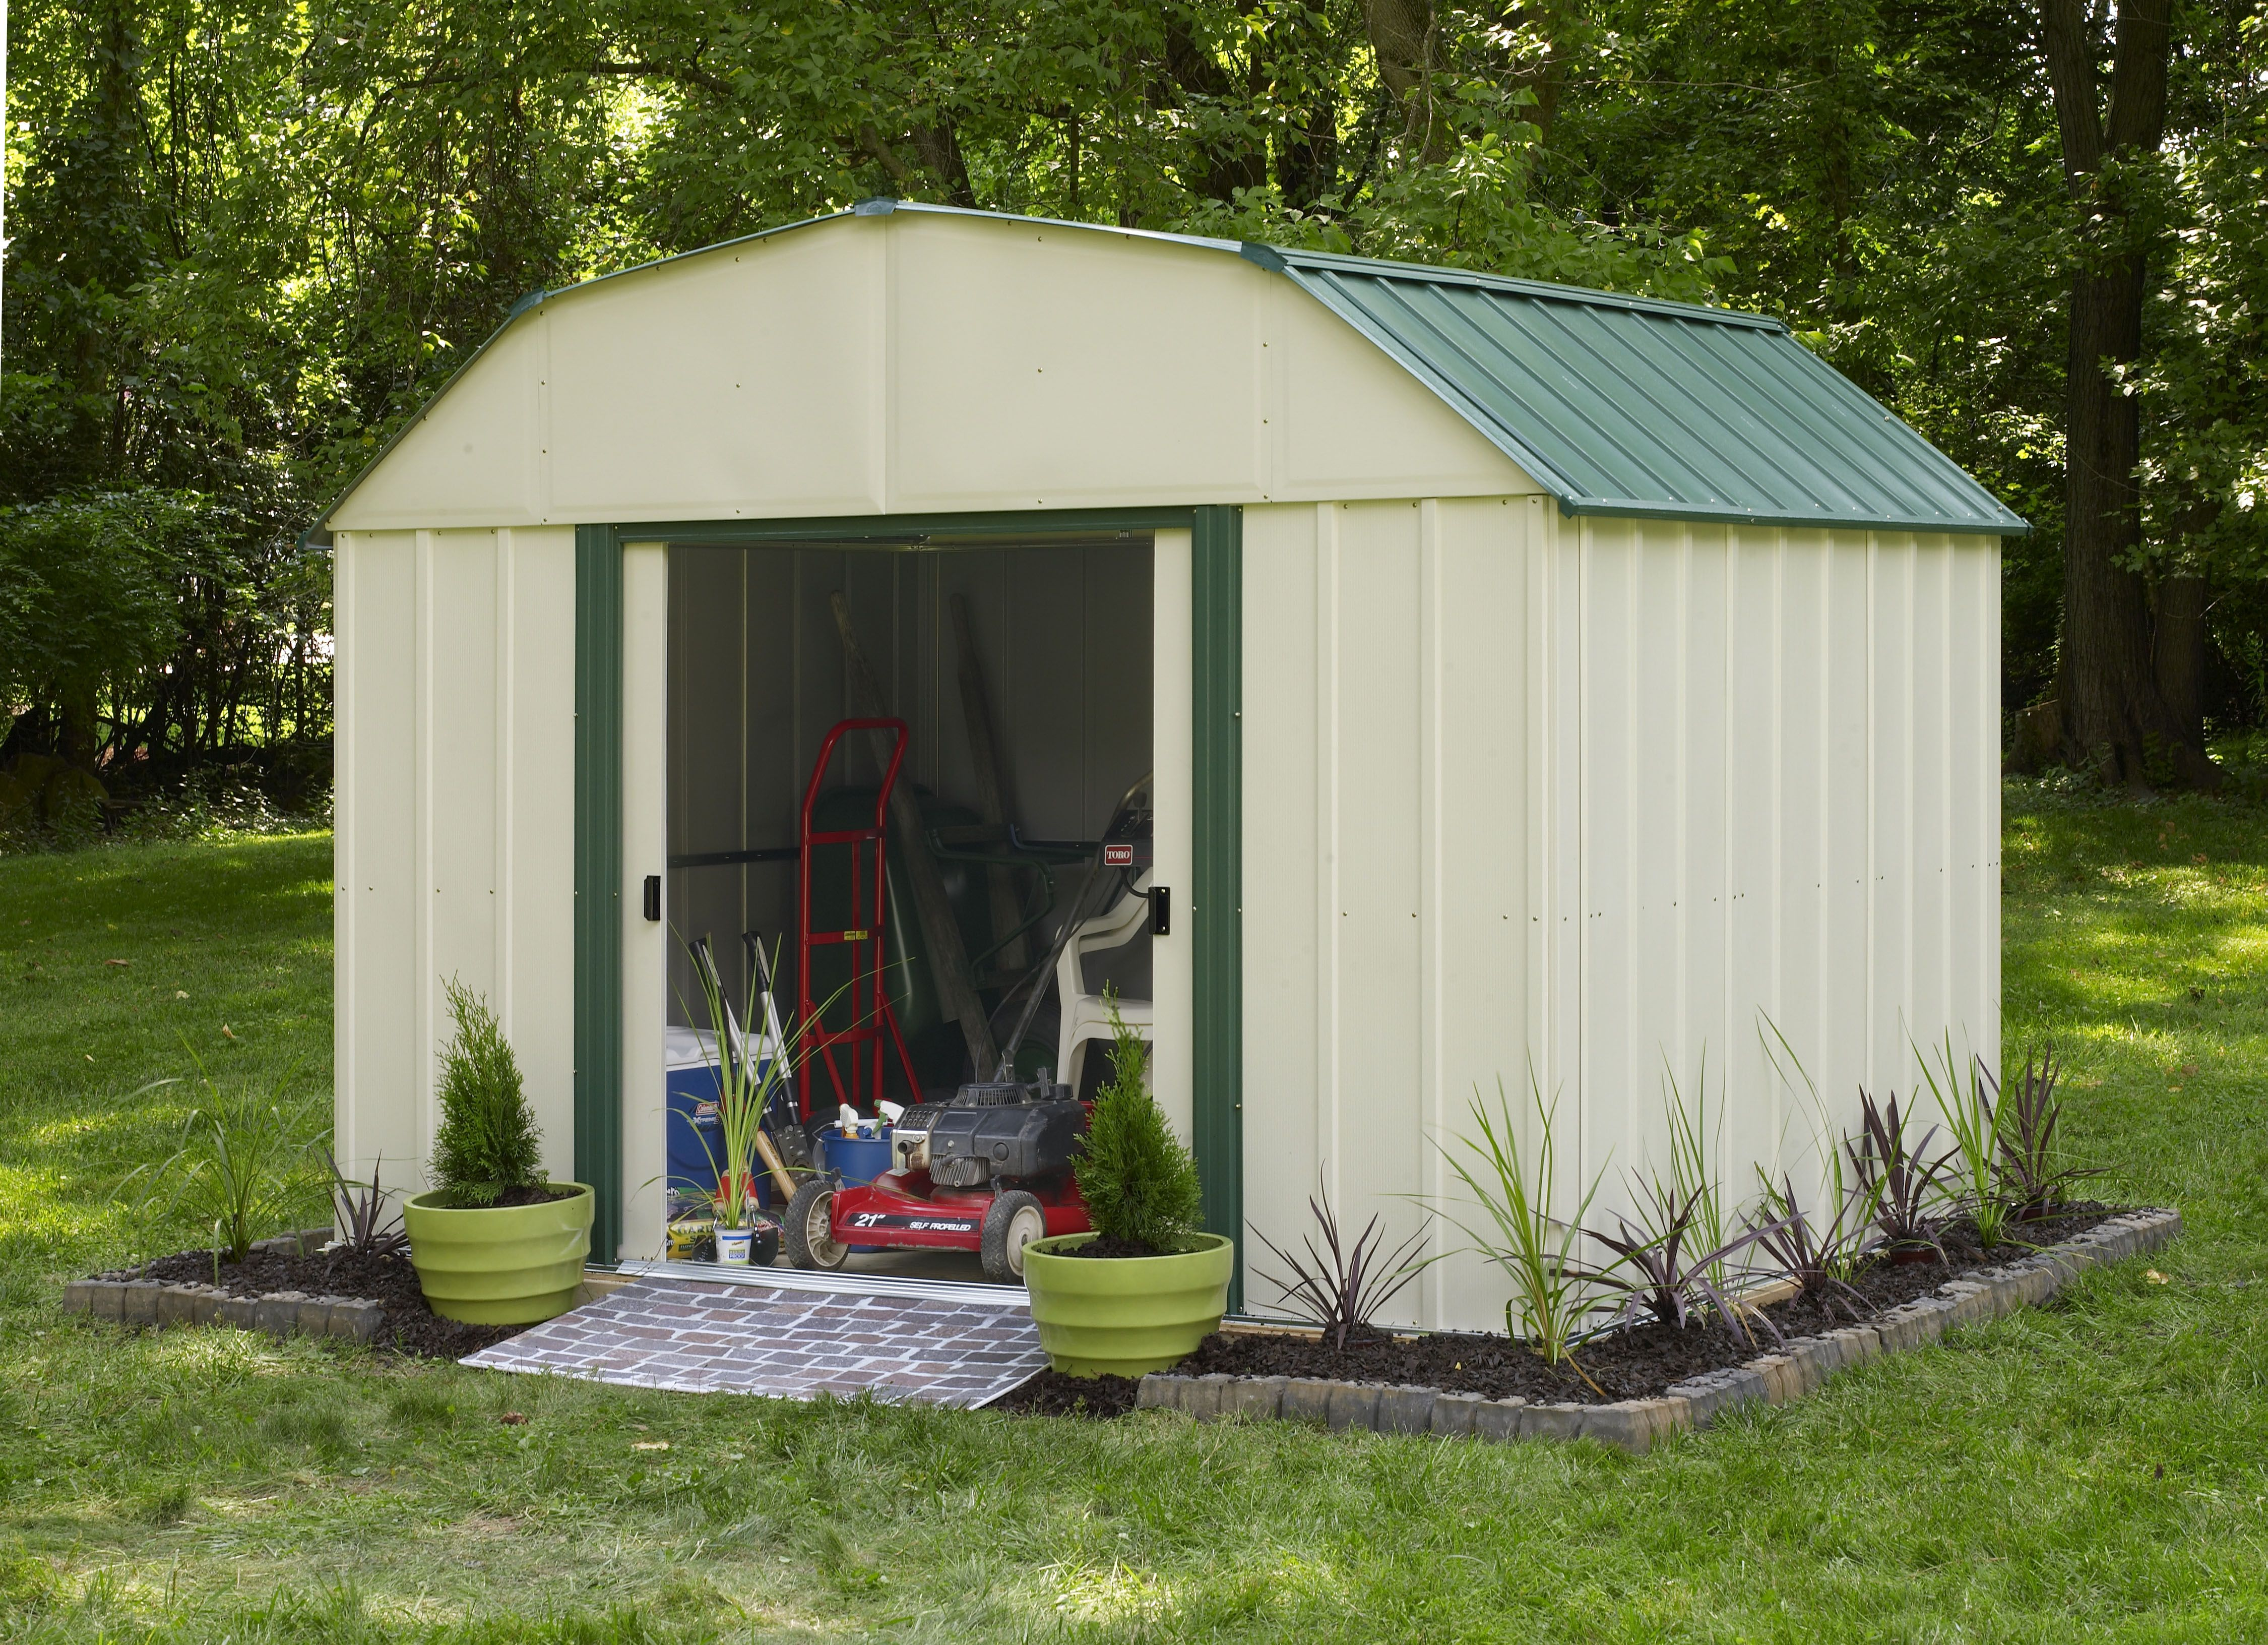 Long Lasting Steel Coated In Vinyl Gives This Garden Shed Extra Protection  From The Elements Http